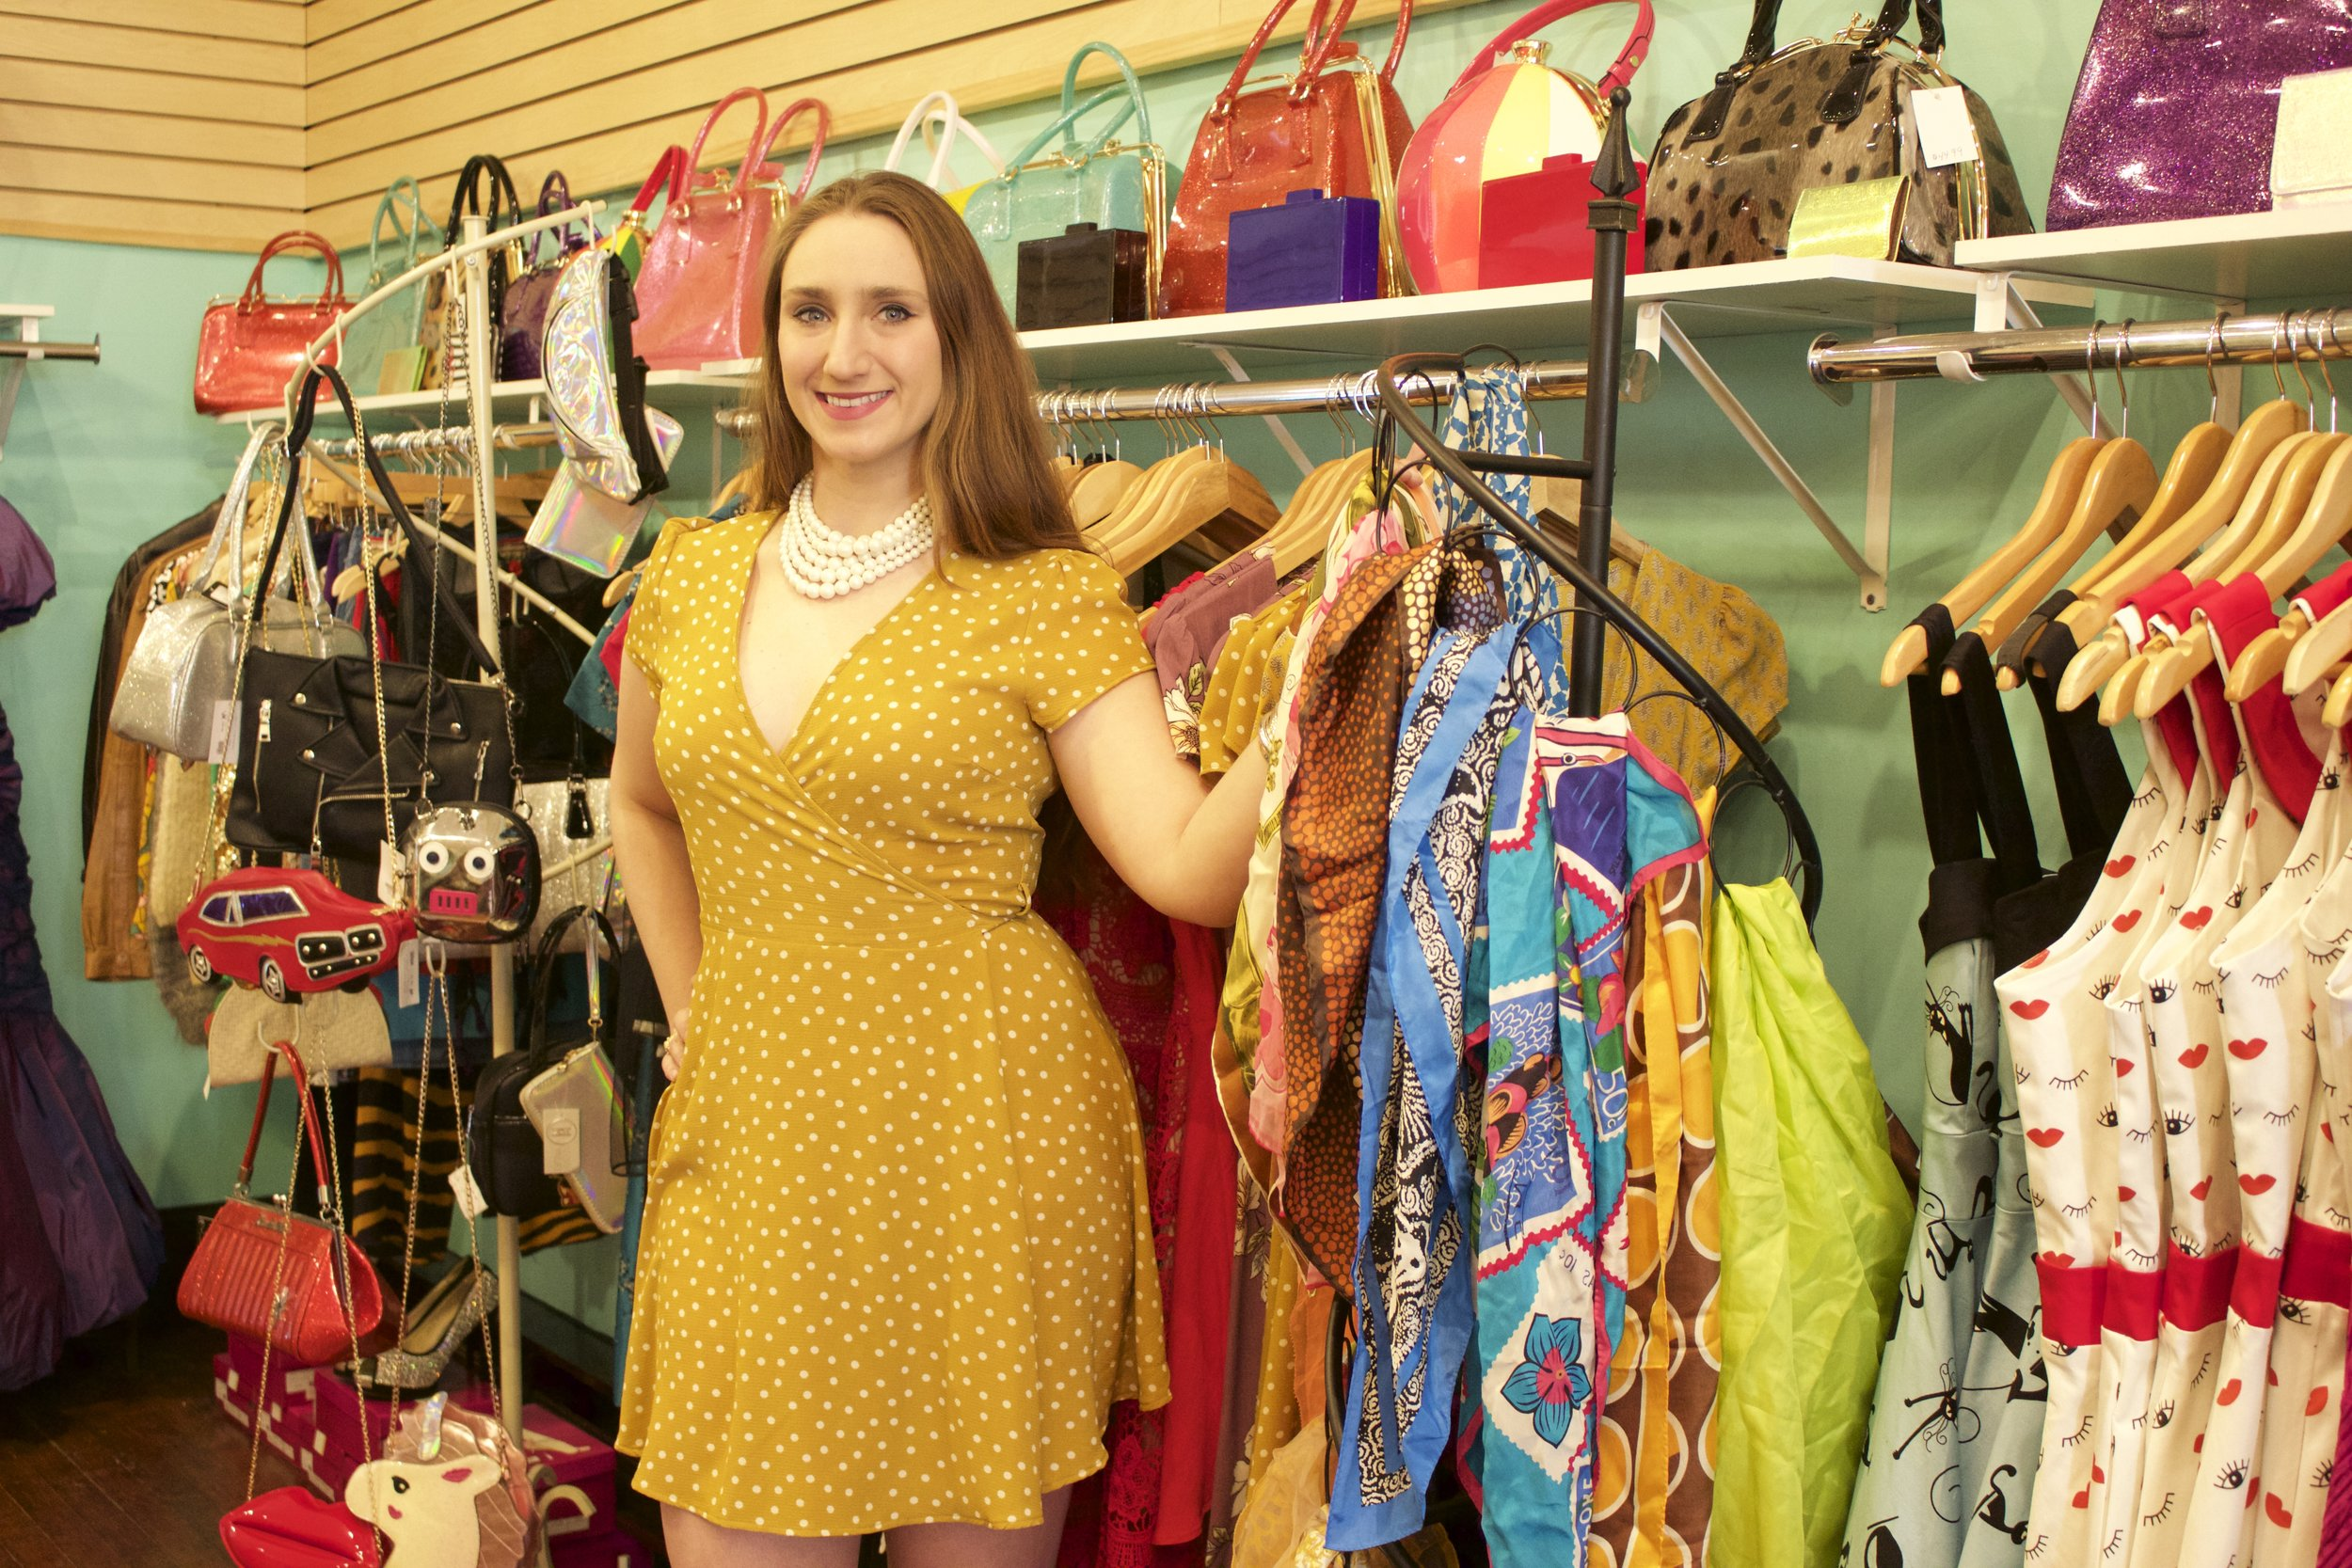 Dominique Maciejka, co-owner of Paper Doll Vintage Boutique and Paper Doll Curiosity Shoppe, said the new Huntington location will offer a mixture of women's true vintage clothing and alternative style gifts and novelties.   Long Islander News photos/Janee Law